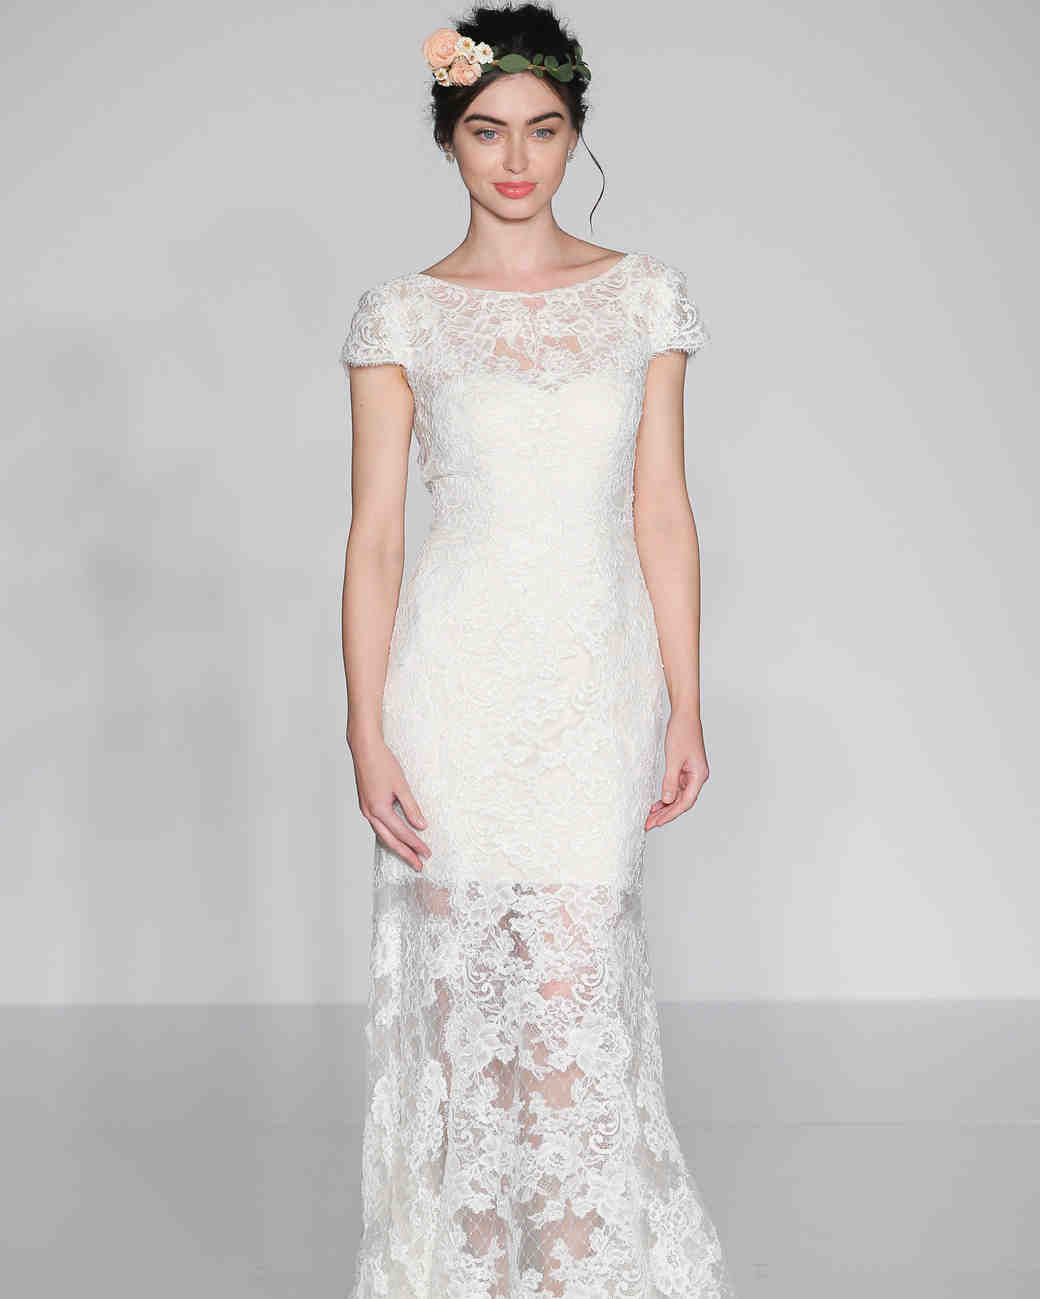 527cd46ea86 Maggie Sottero Spring 2017 Wedding Dress Collection